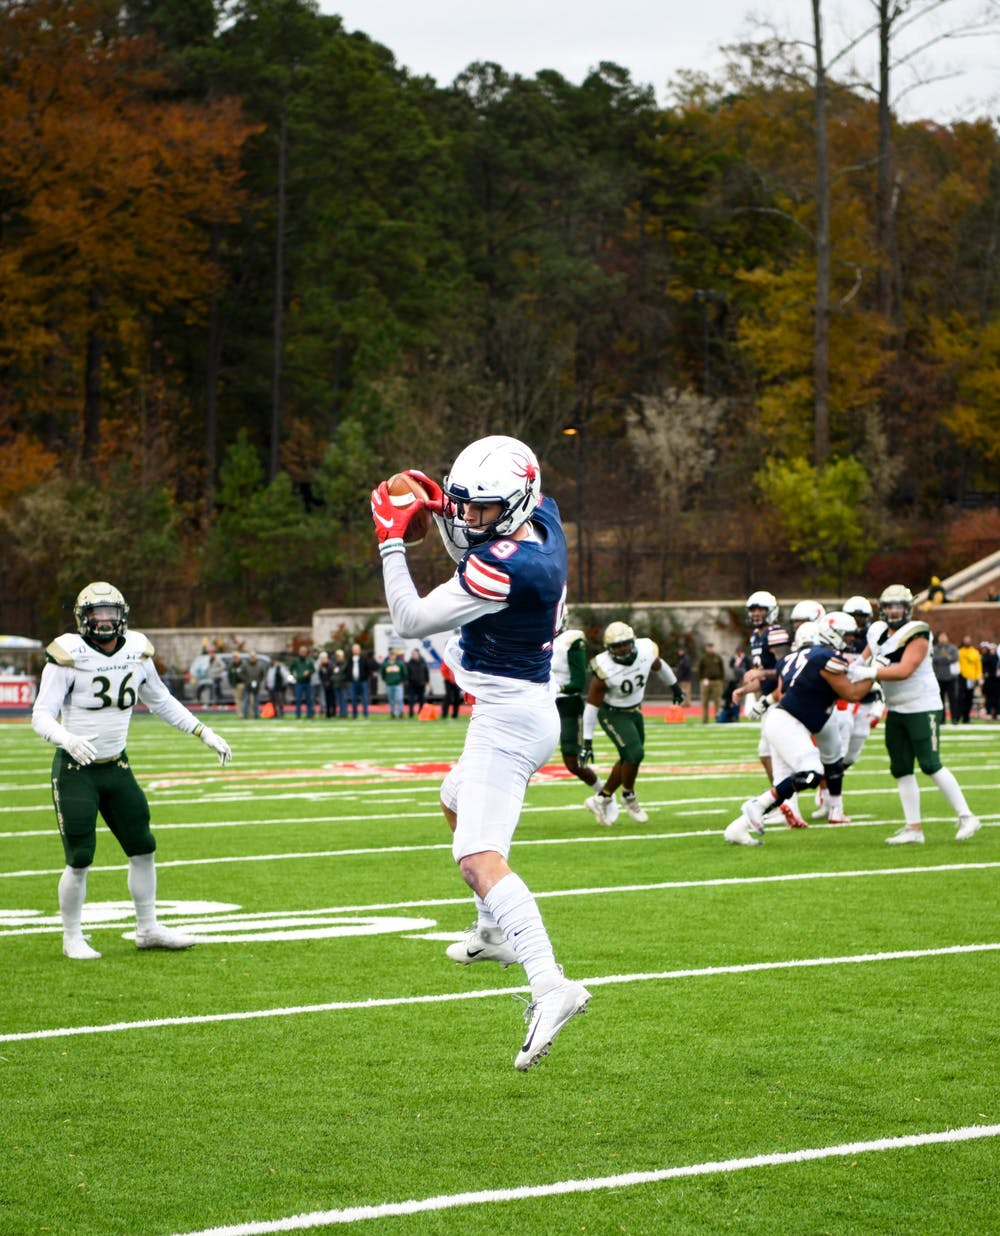 <p>Wide receiver Charlie Fessler makes a catch during the Capital Cup game on Saturday, November 23, 2019. The Spiders lost to rival College of William &amp; Mary 21-15.</p>